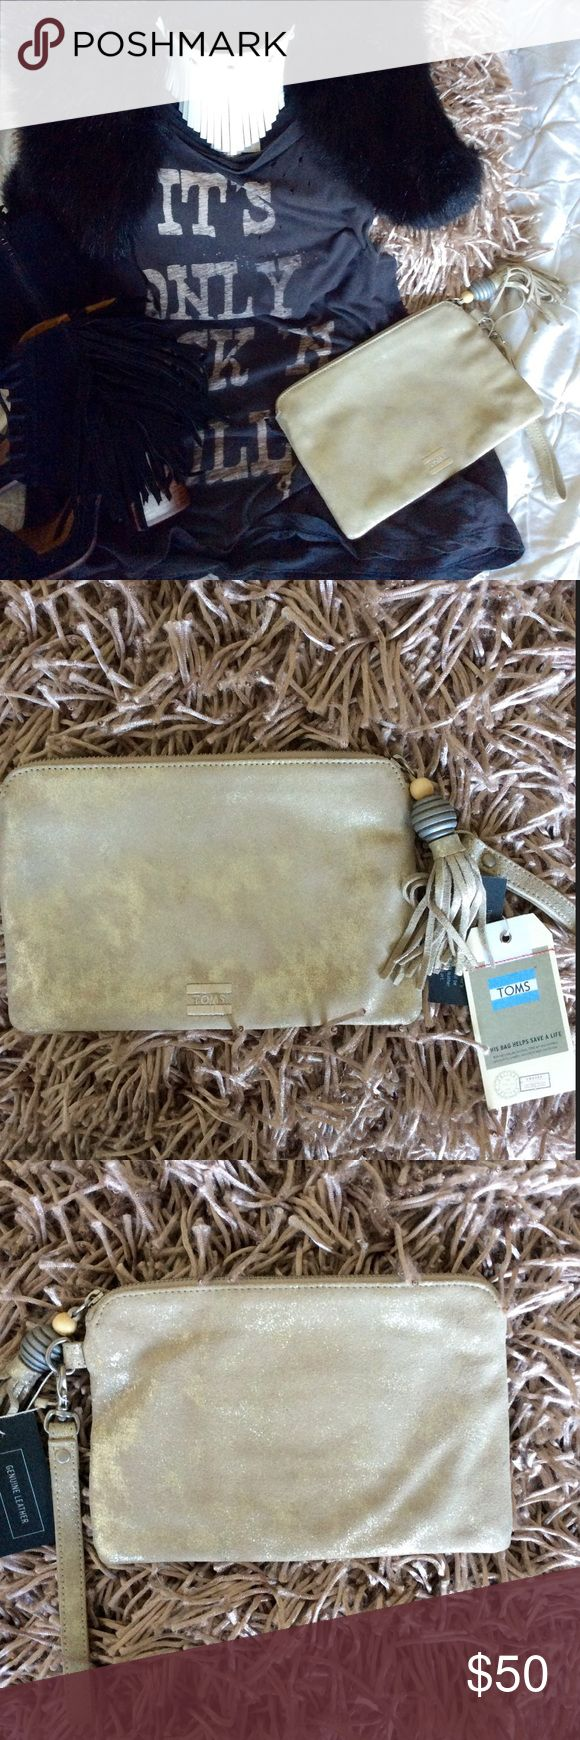 "TOMS Party Metallic Pouch Boho chic TOMS pouch wristlet.  Super cute and fun.  New with tags.  Made of leather.  9.5"" x 6"". For you or a gift comes with bag TOMS Bags Clutches & Wristlets"